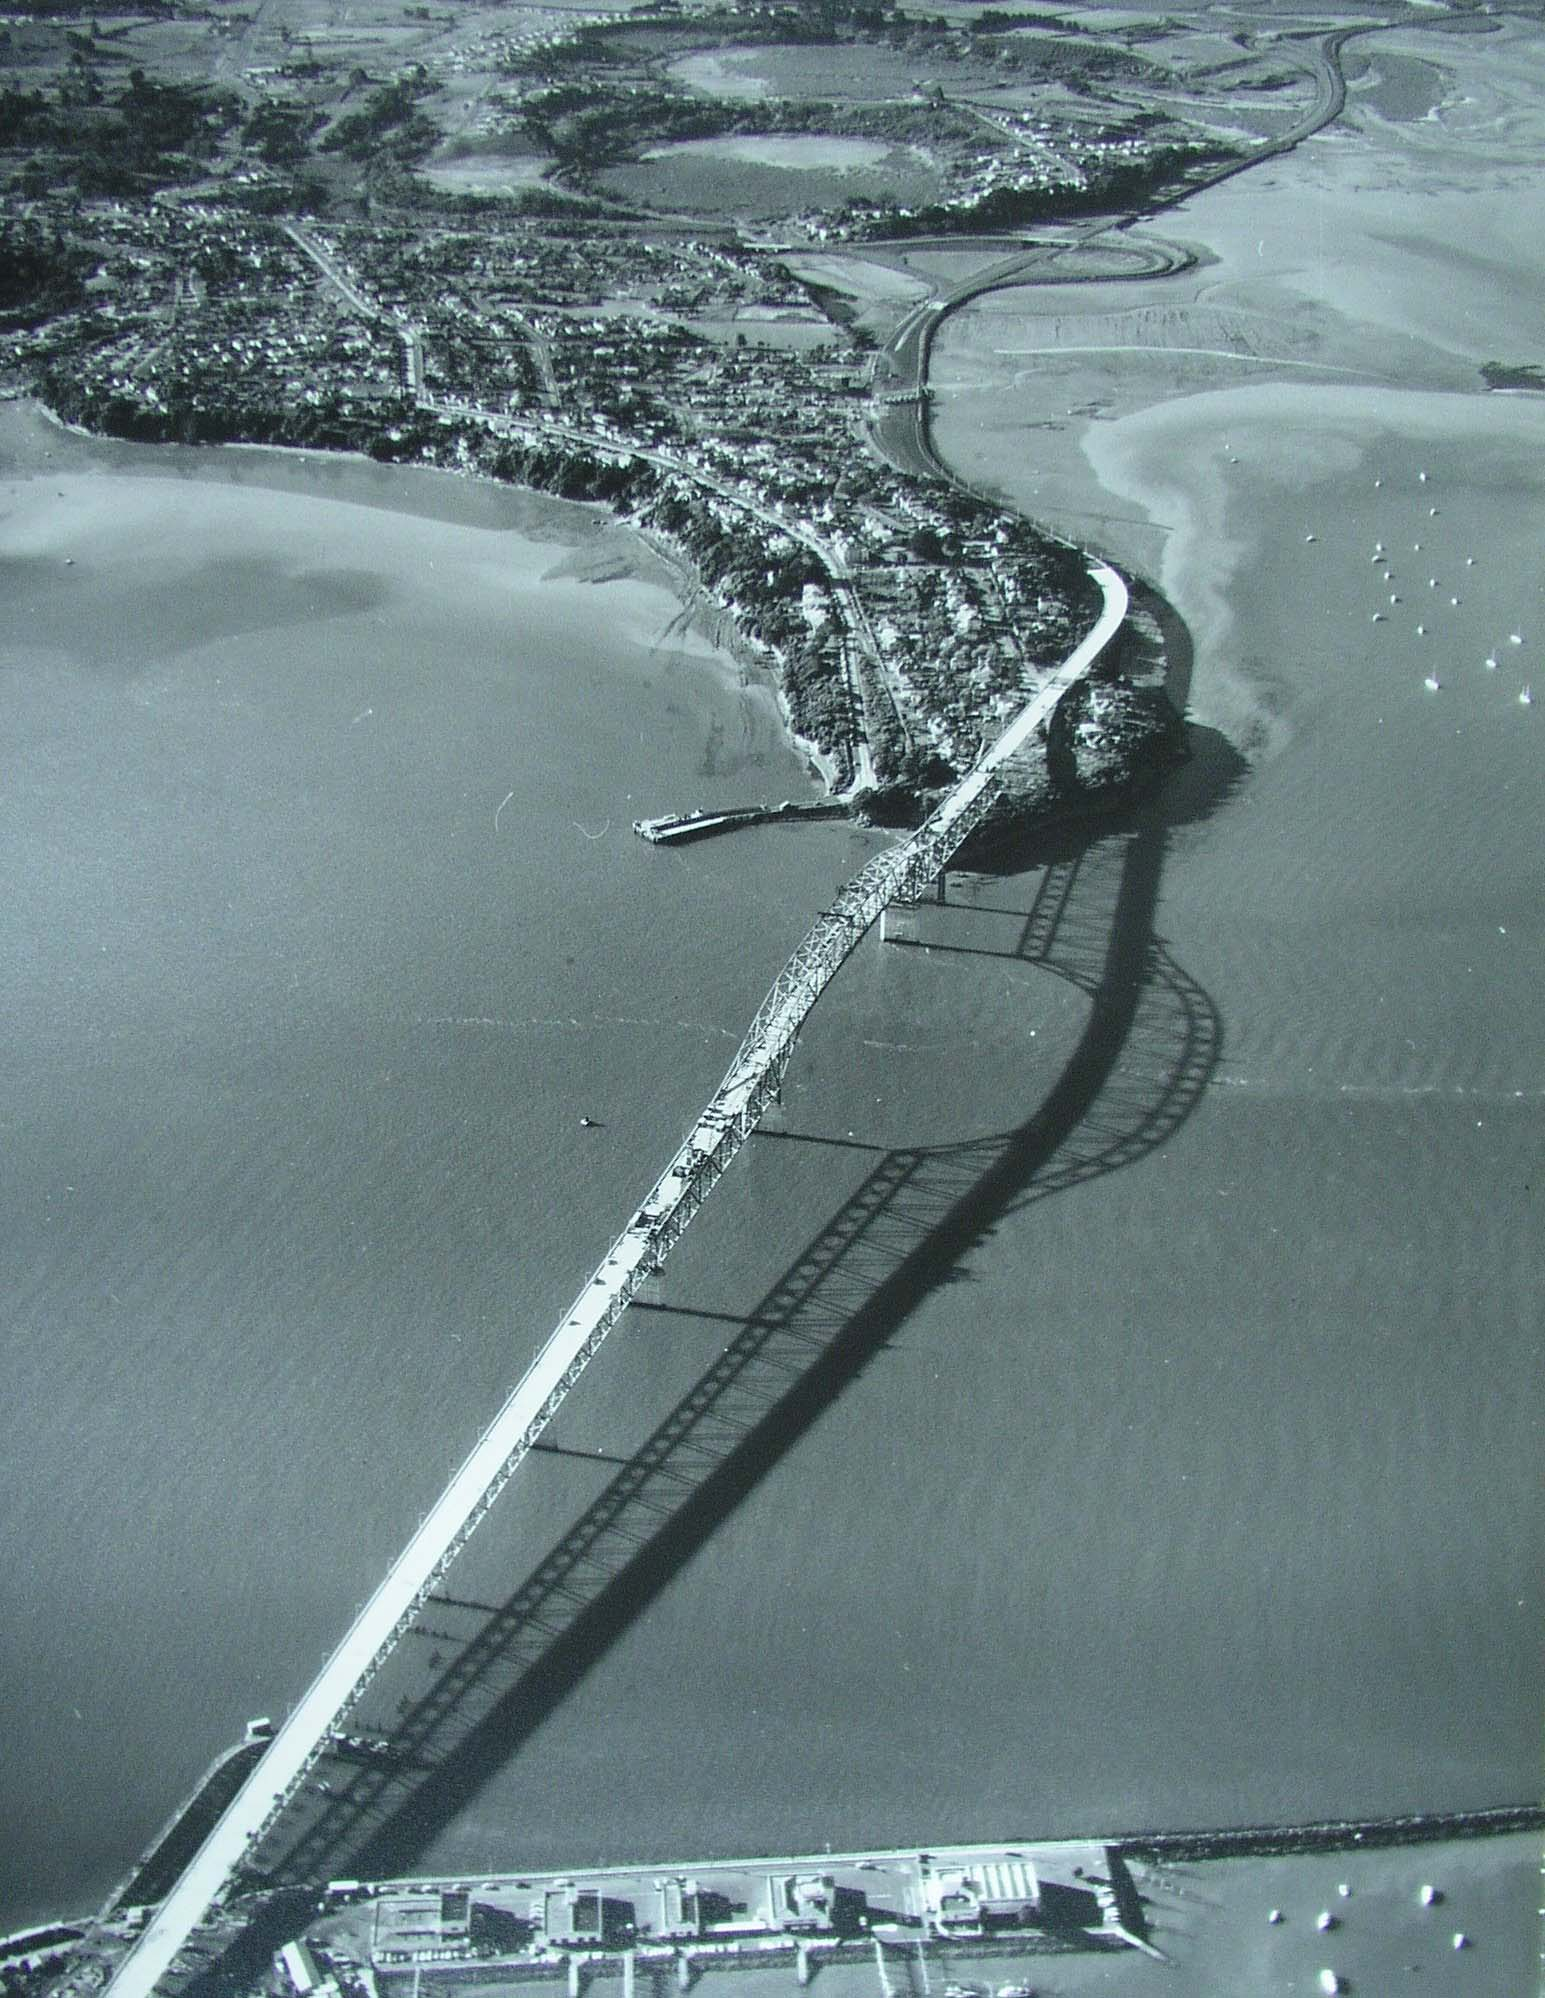 Aerial photo showing construction progress on Auckland Harbour Bridge on 13 April 1959